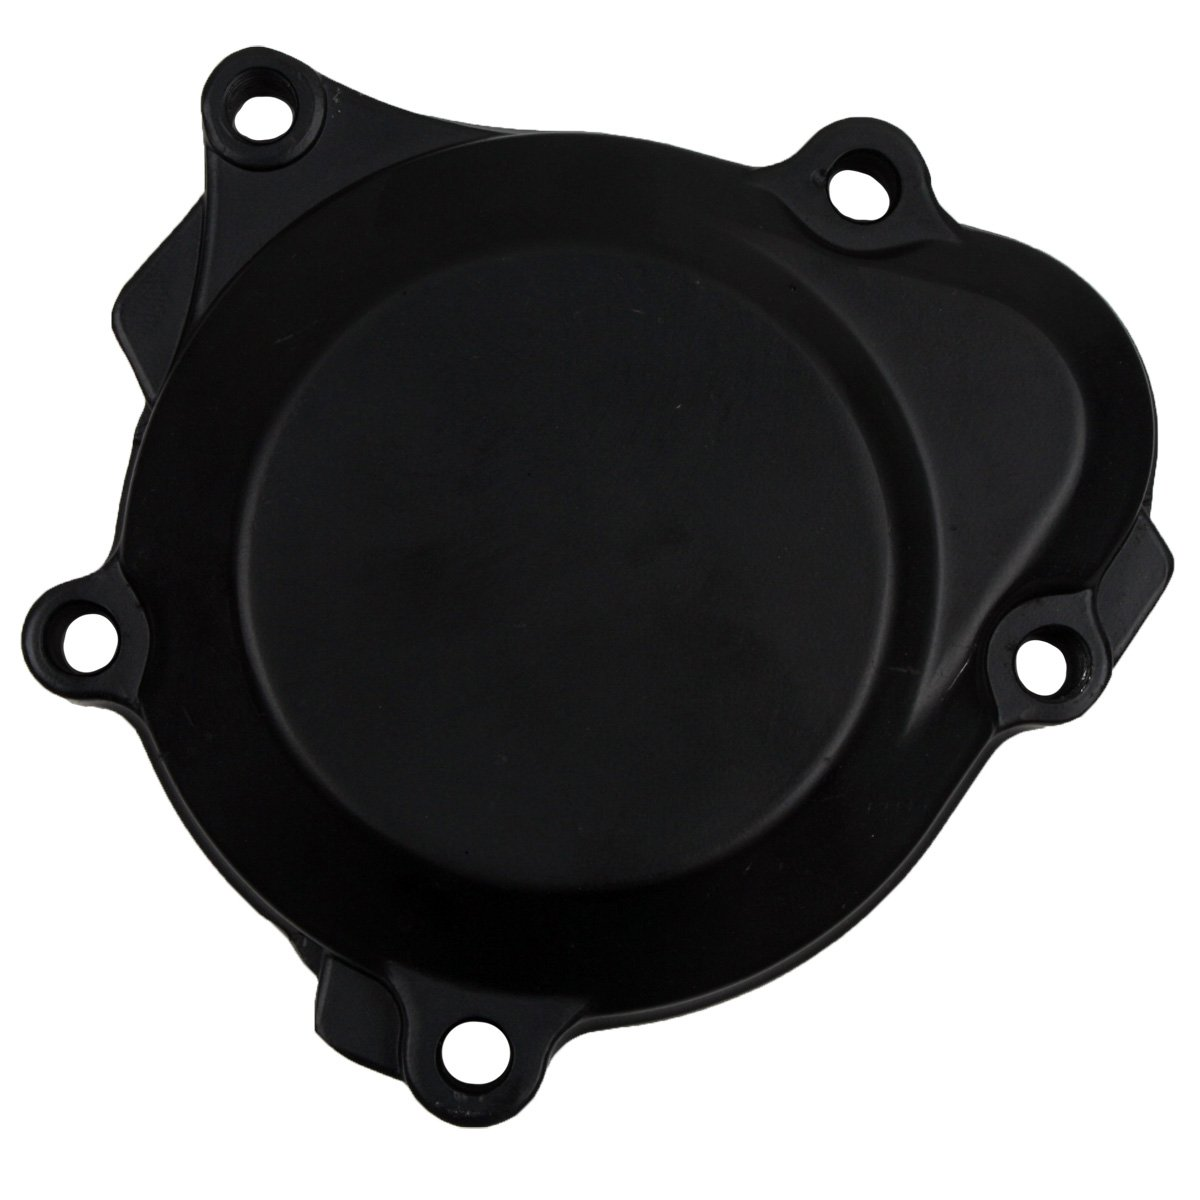 XFMT Right Engine Starter Cover Crankcase For SUZUKI GSXR1000 2001-2008 K1 K3 K5 by XFMT